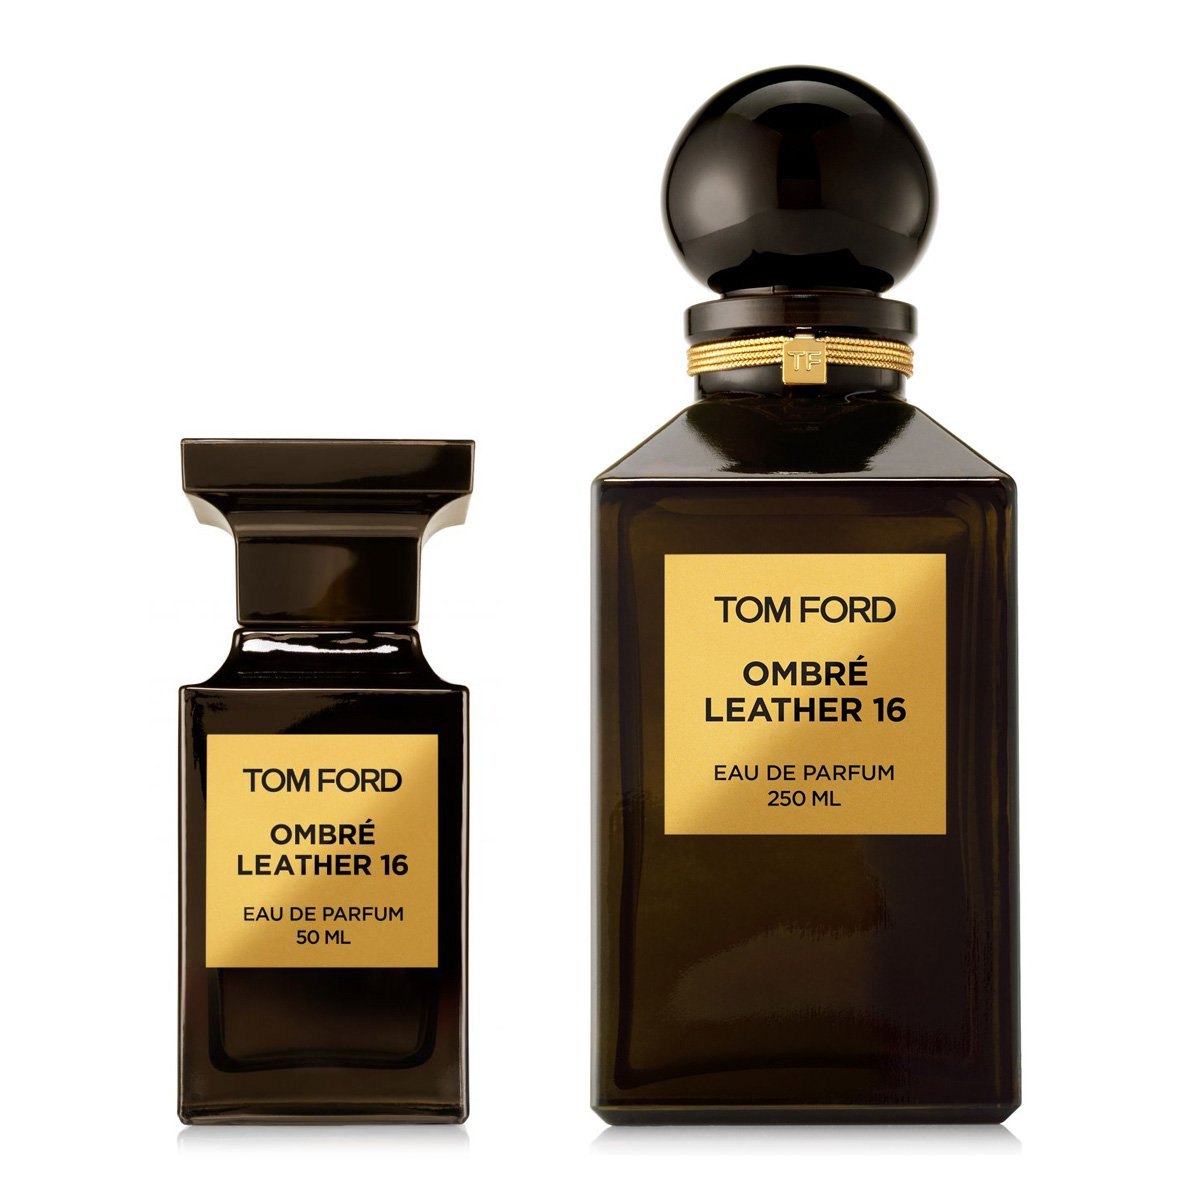 Tom Ford - Ombre Leather 16